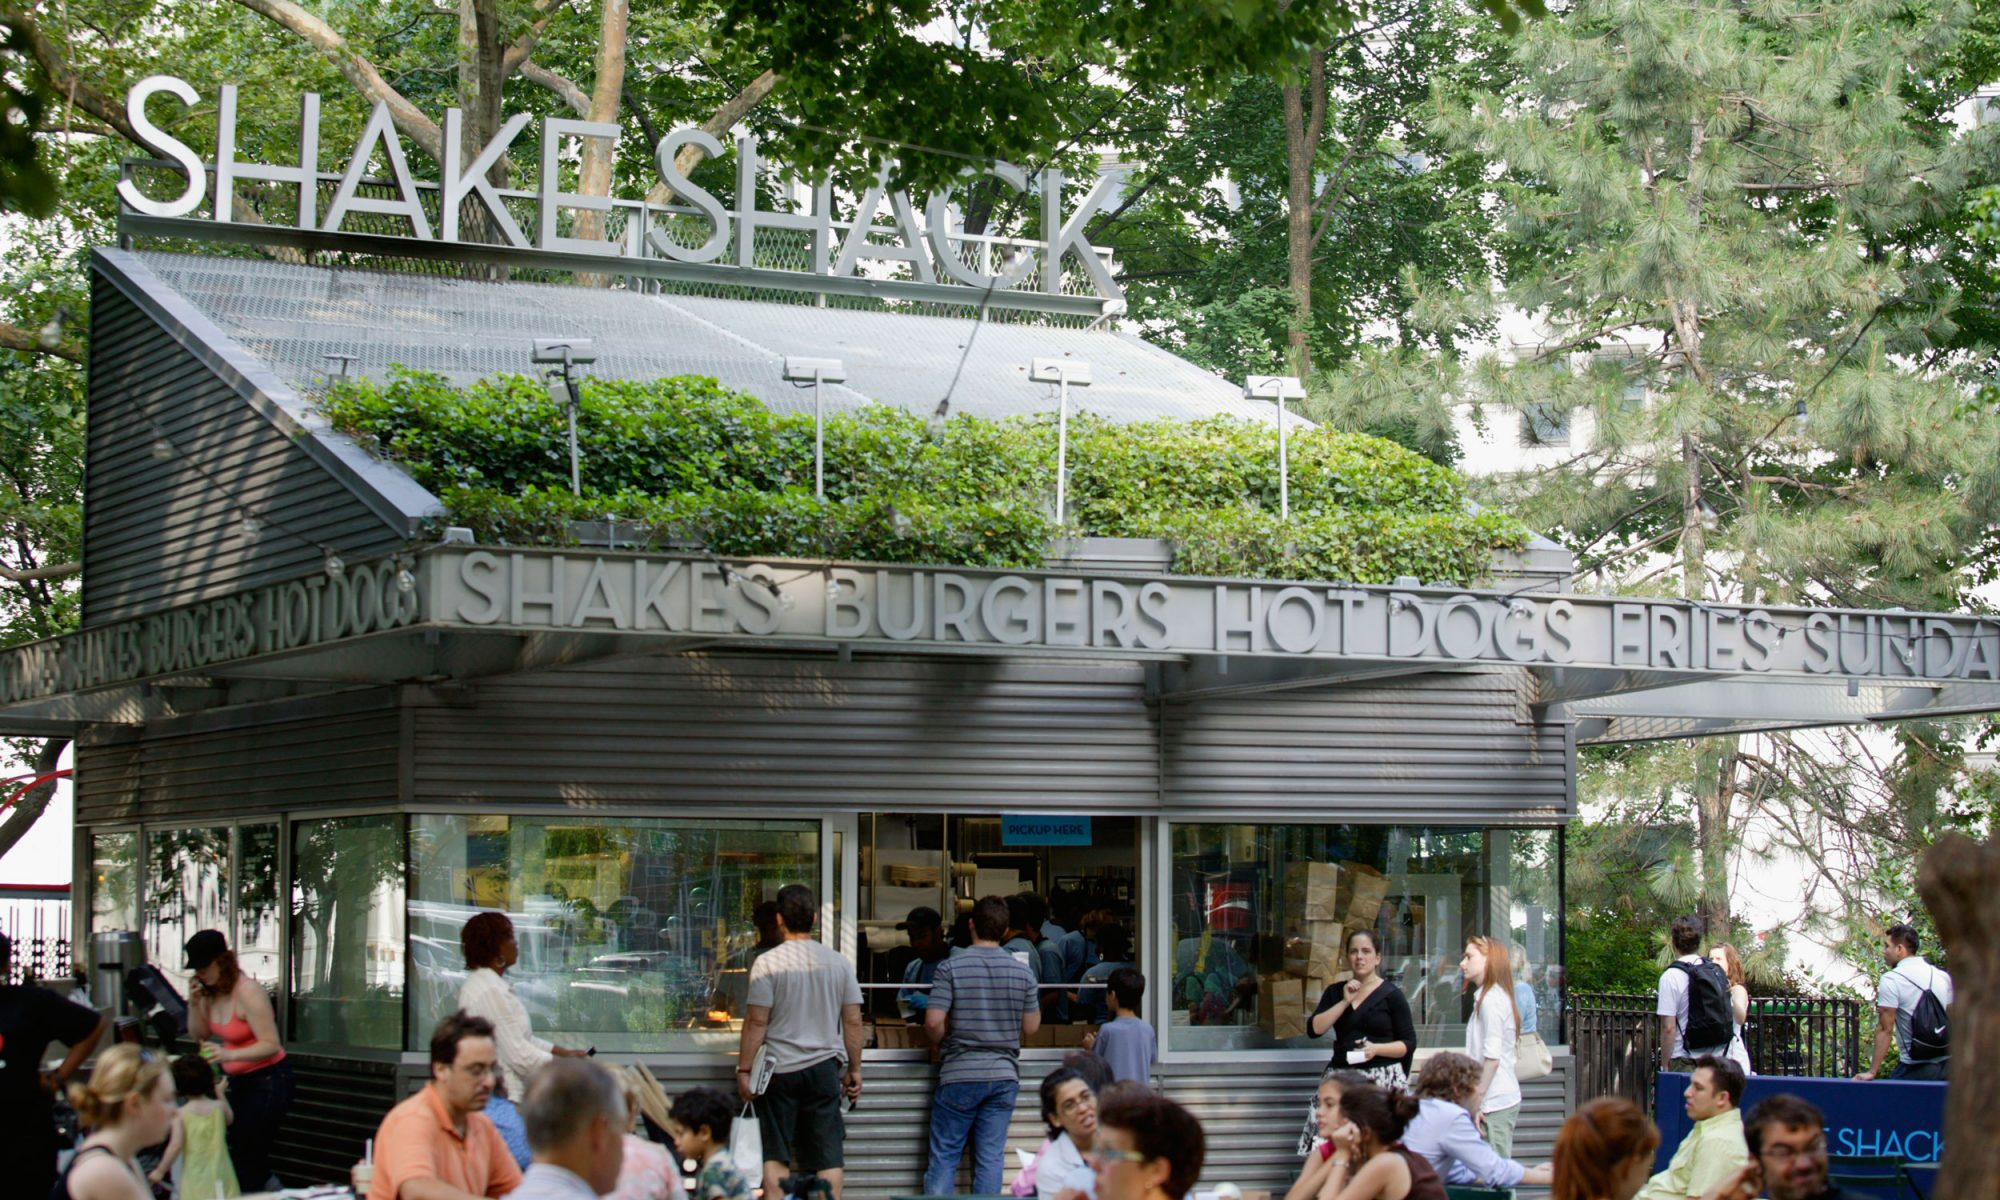 EC: The Shake Shack Breakfast Menu Is Set to Expand